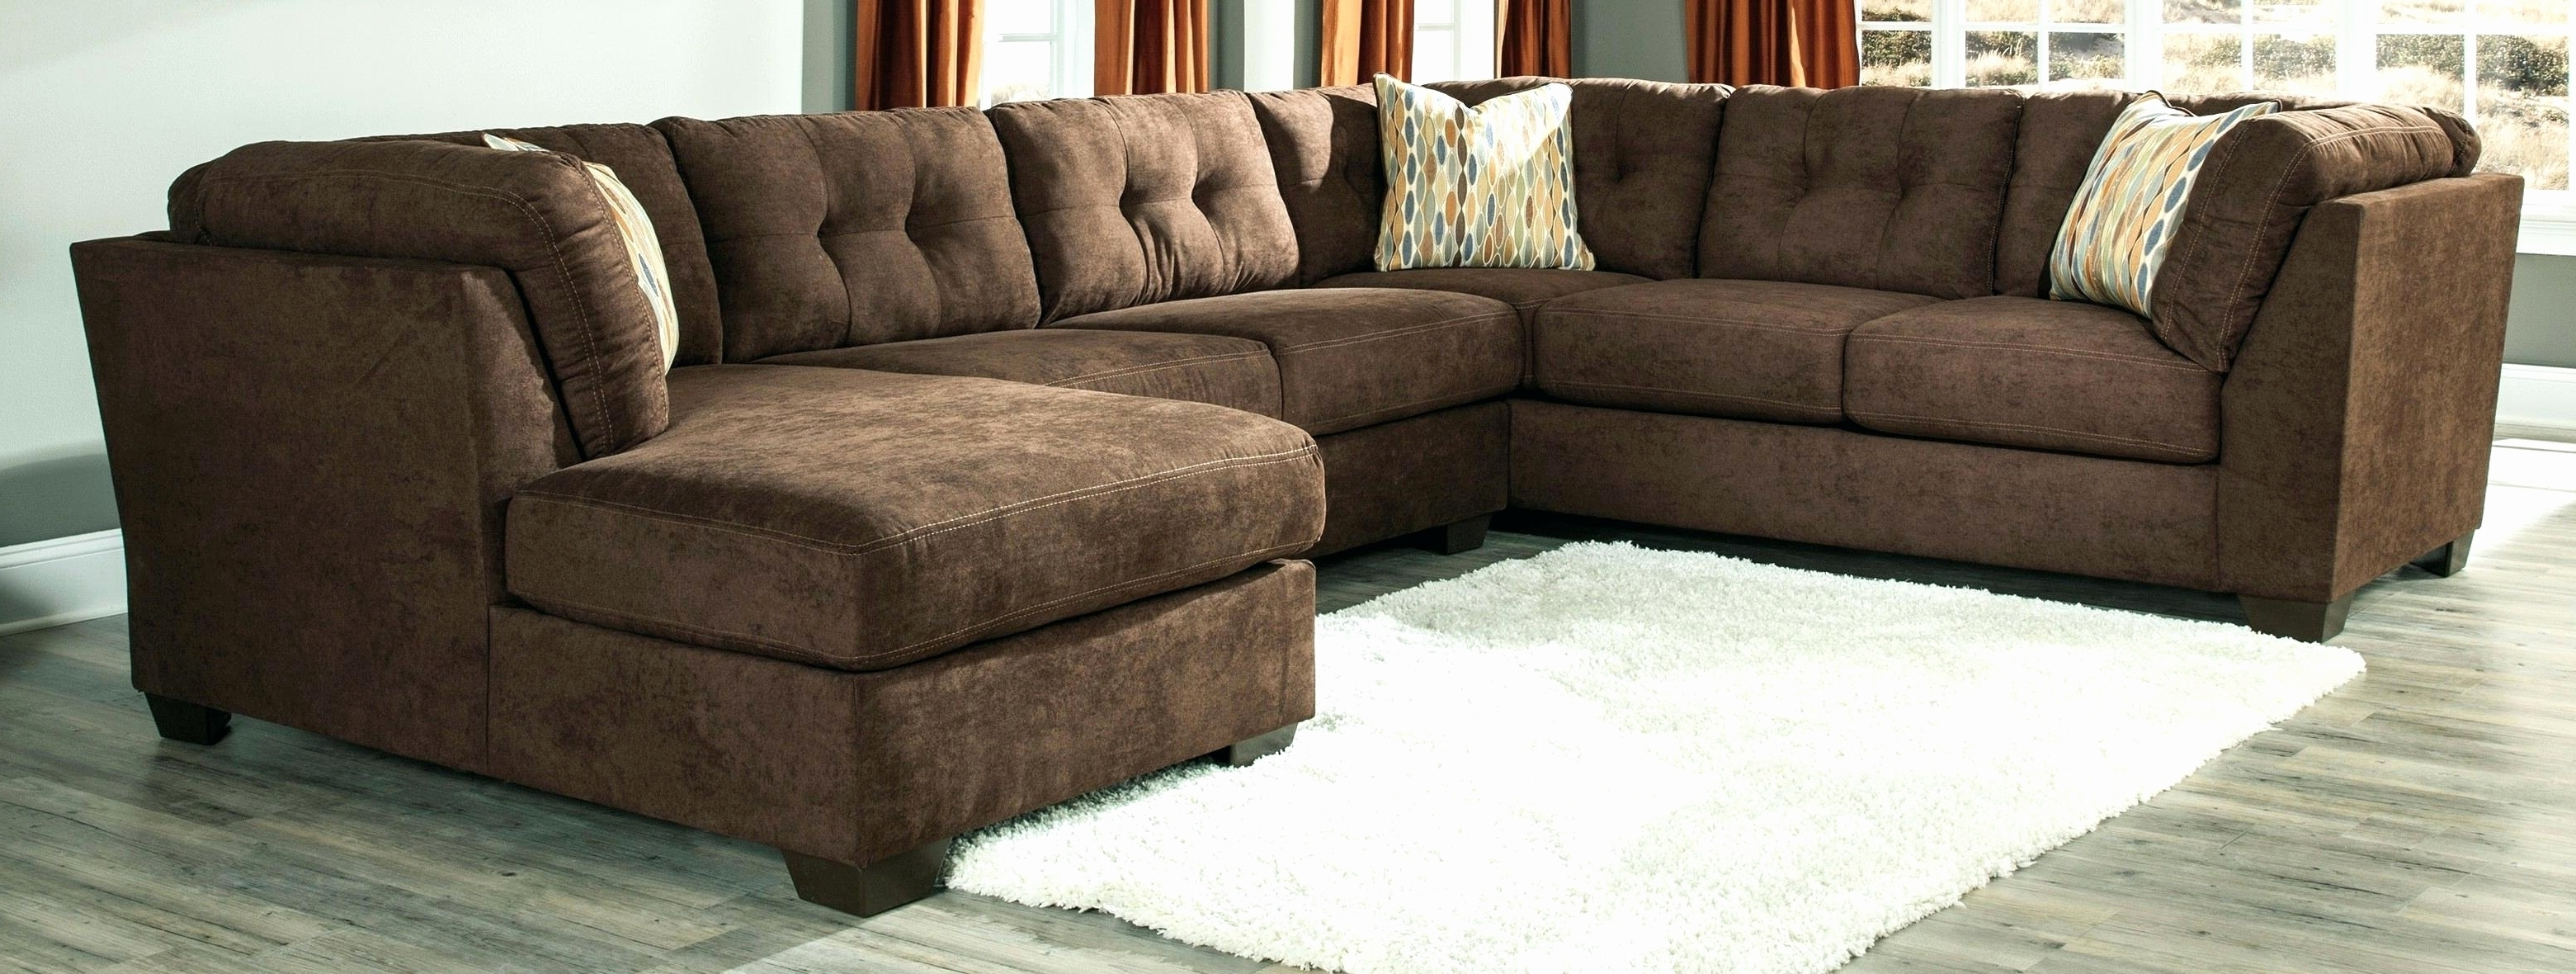 latest fantastic sofa leather of images sectional sofas furniture in couch design ashley chaise trend with couches gray